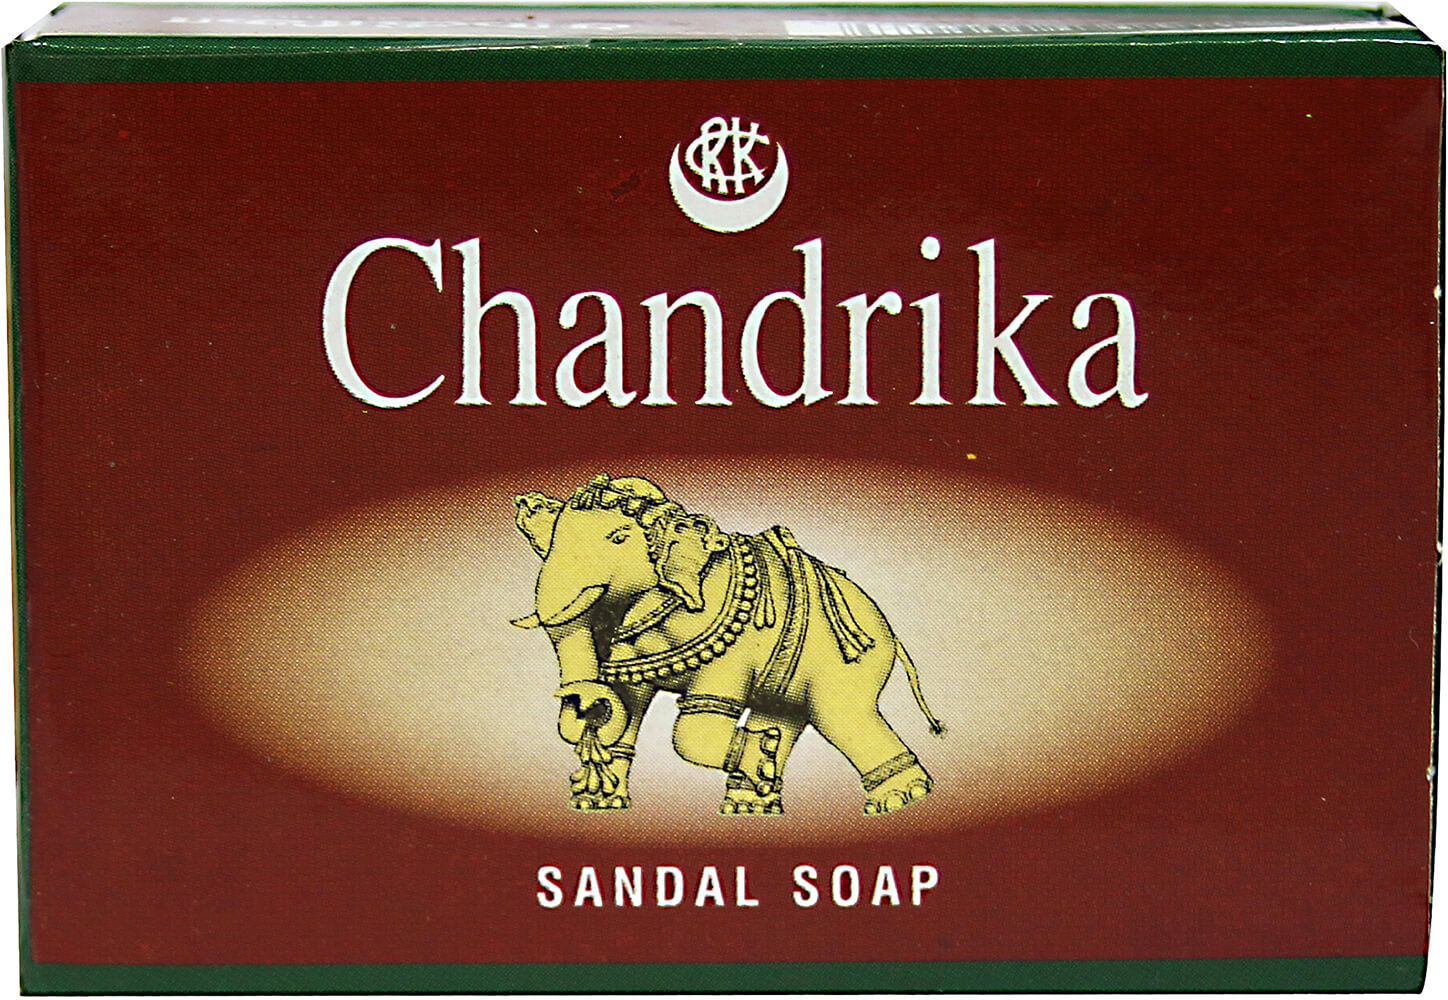 Chandrika Sandal Soap